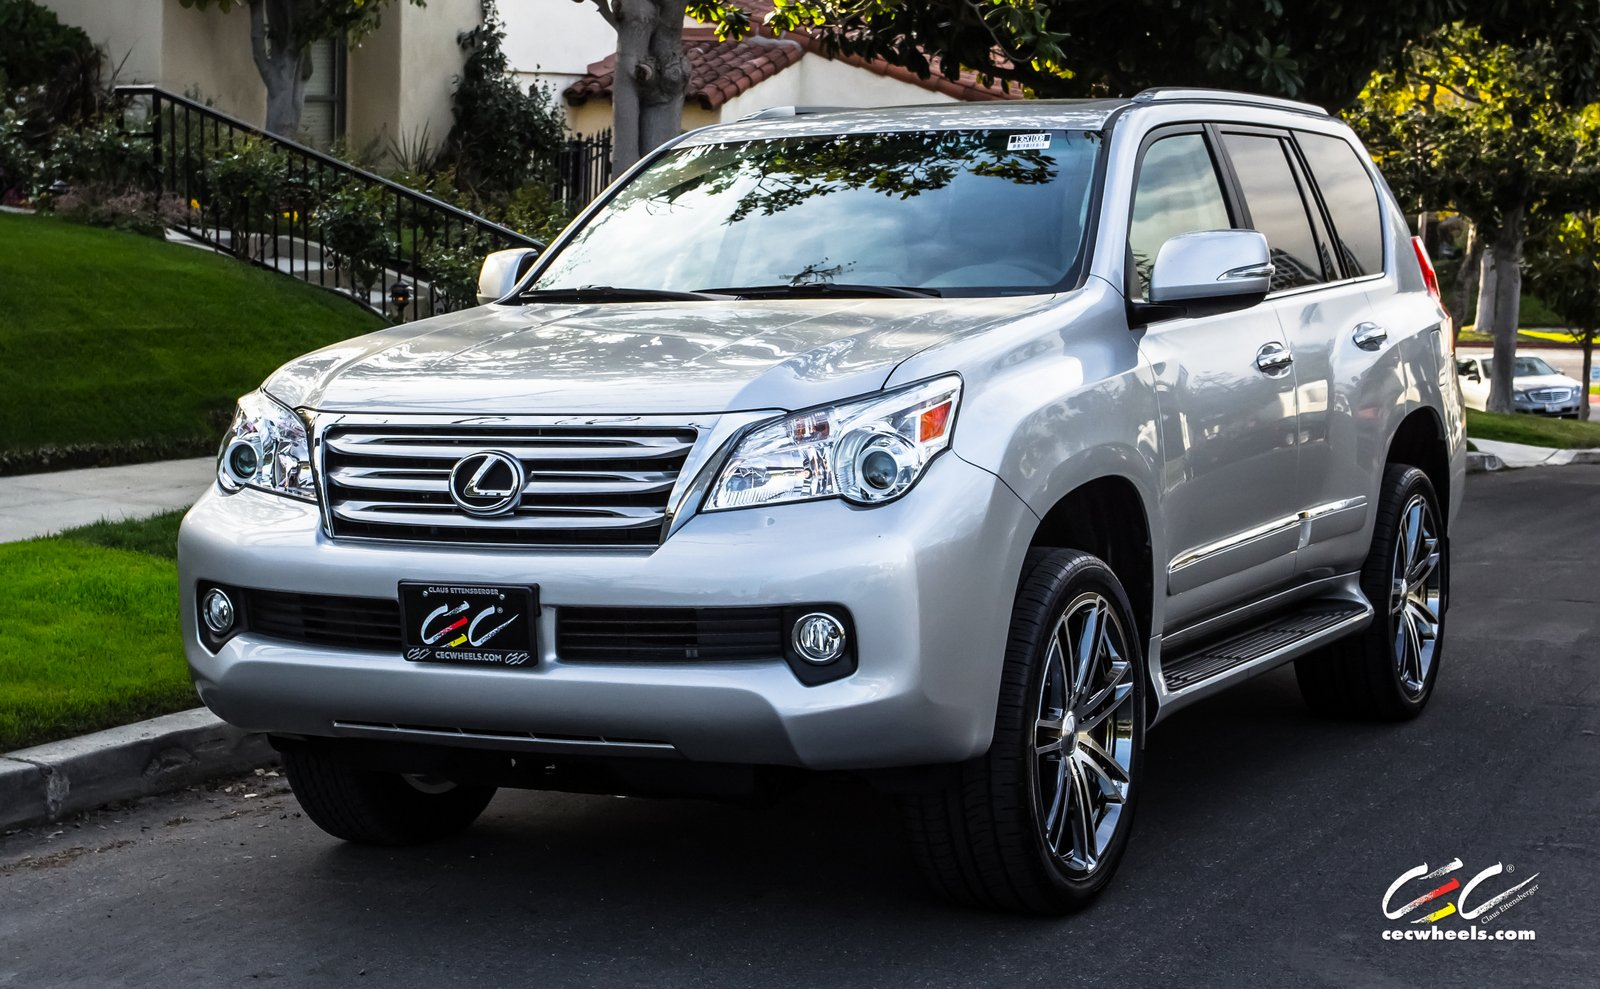 2015 lexus gx 460 ii pictures information and specs auto. Black Bedroom Furniture Sets. Home Design Ideas